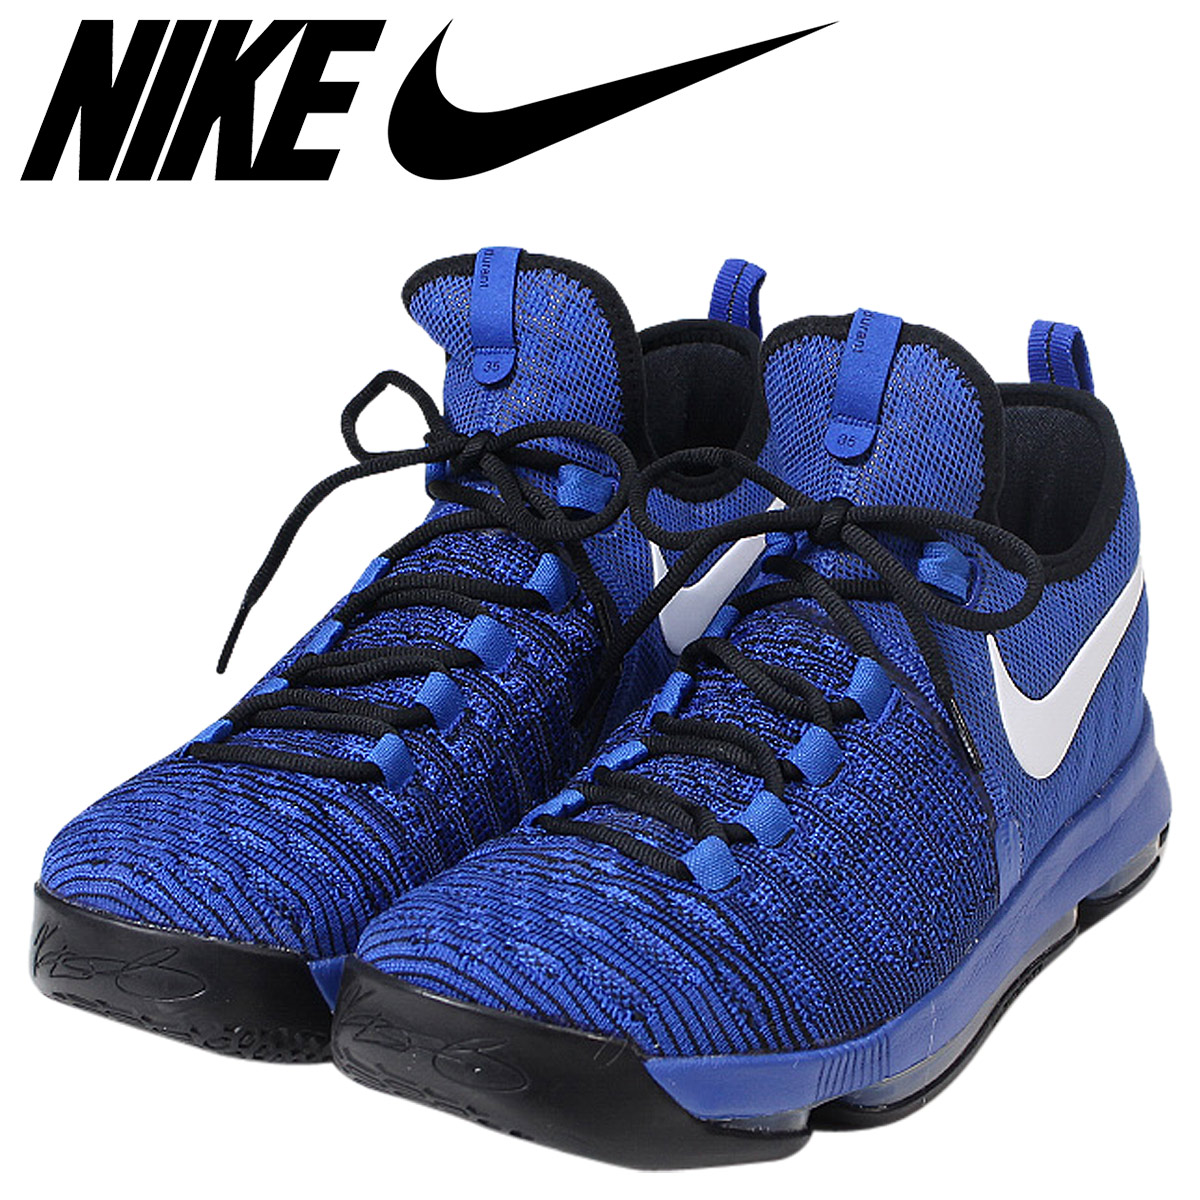 the best attitude 9d3fa 4aa1d ... germany nike nike zoom kd9 sneakers zoom kd 9 ep game royal white men  844382 410